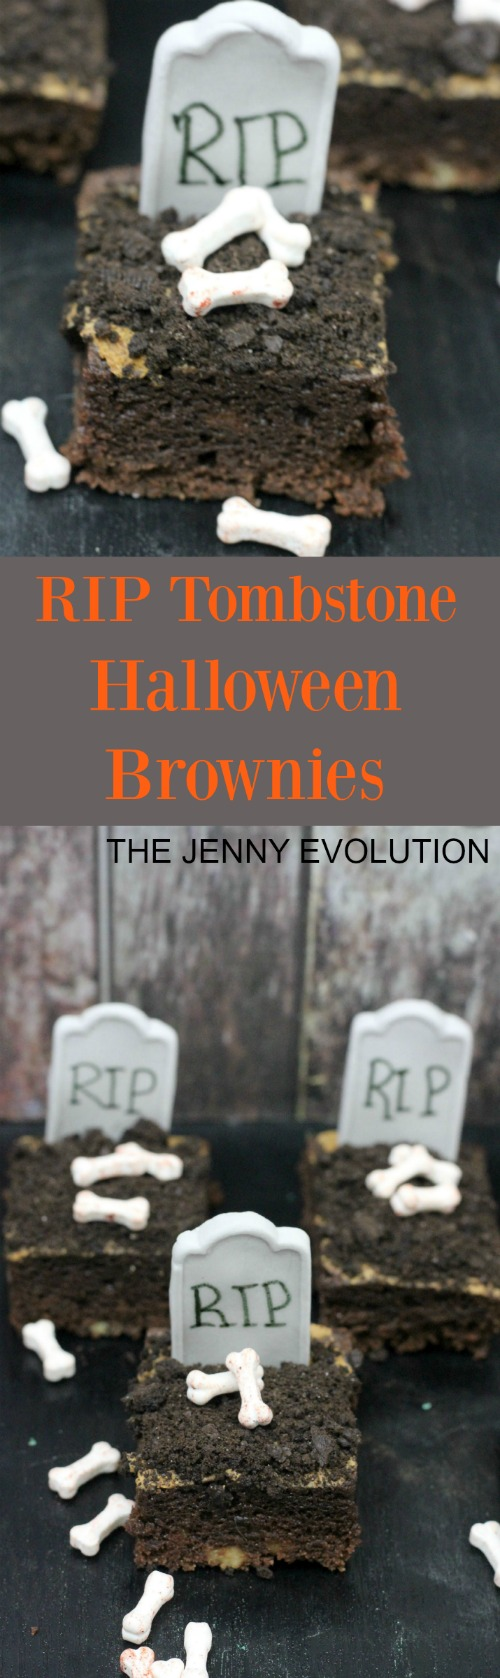 RIP Tombstone Halloween Brownies Recipe | Mommy Evolution